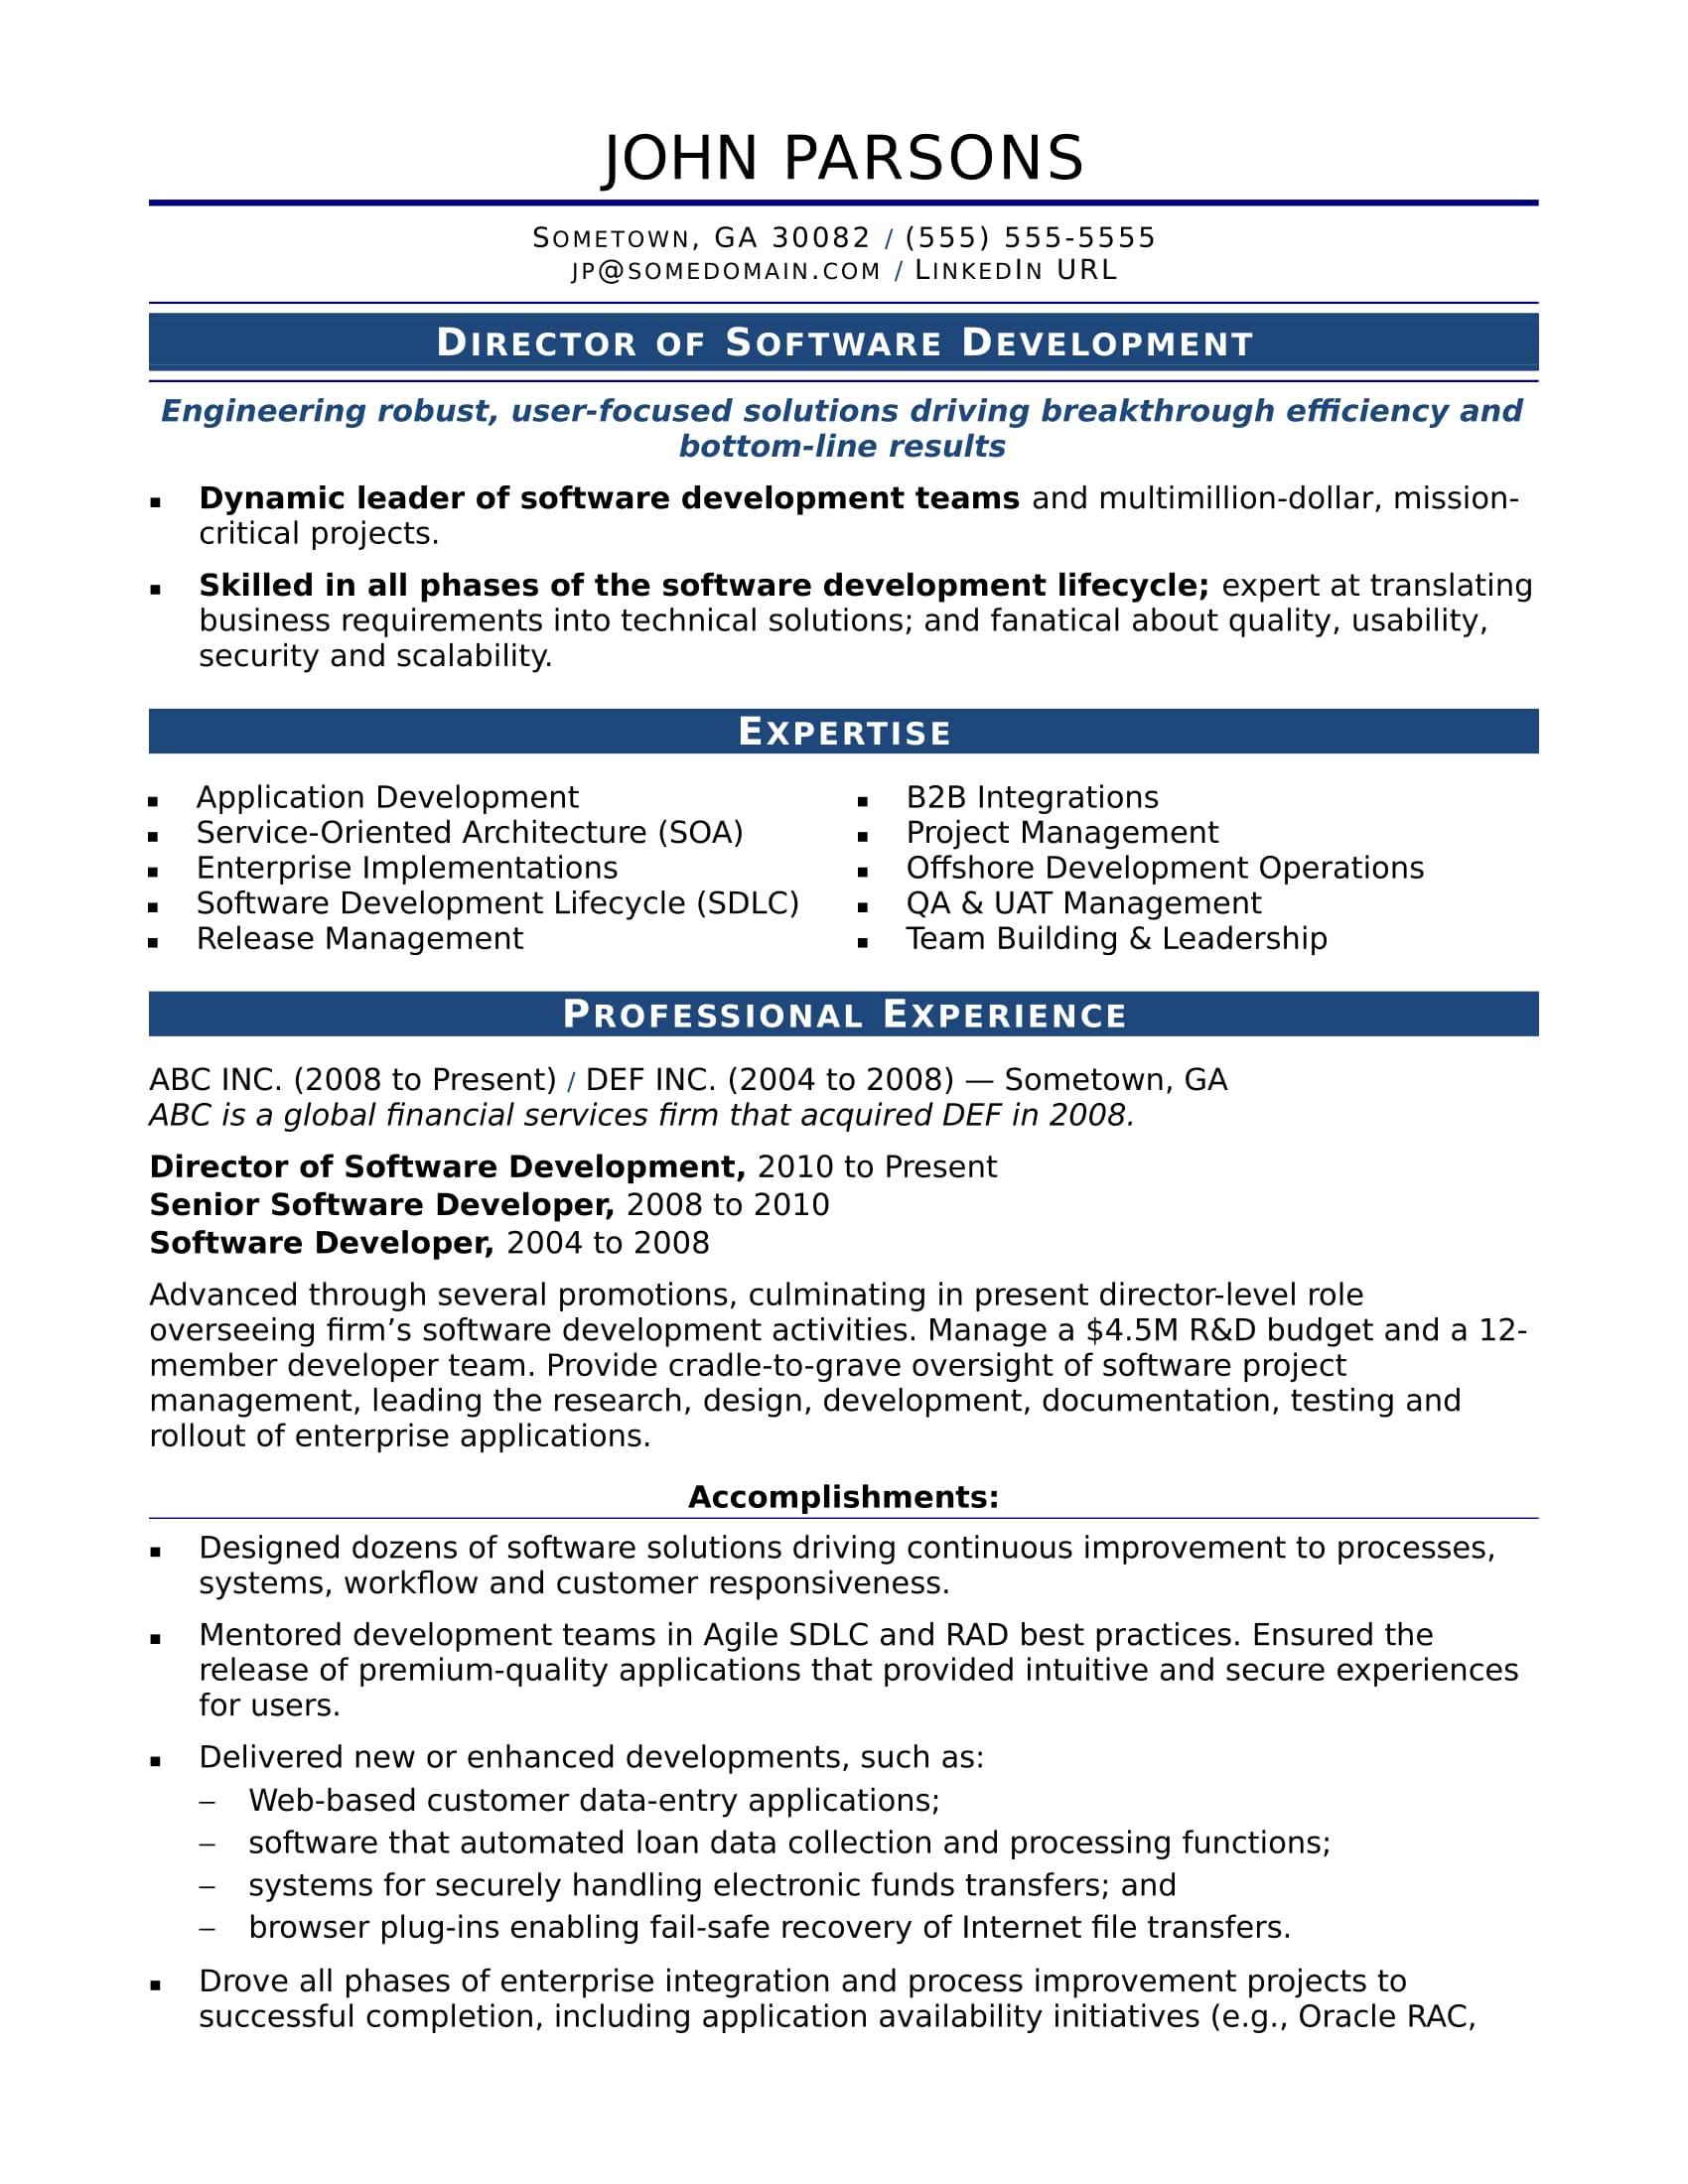 sample resume for an experienced it developer monster previous job experience caregiver Resume Previous Job Experience Resume